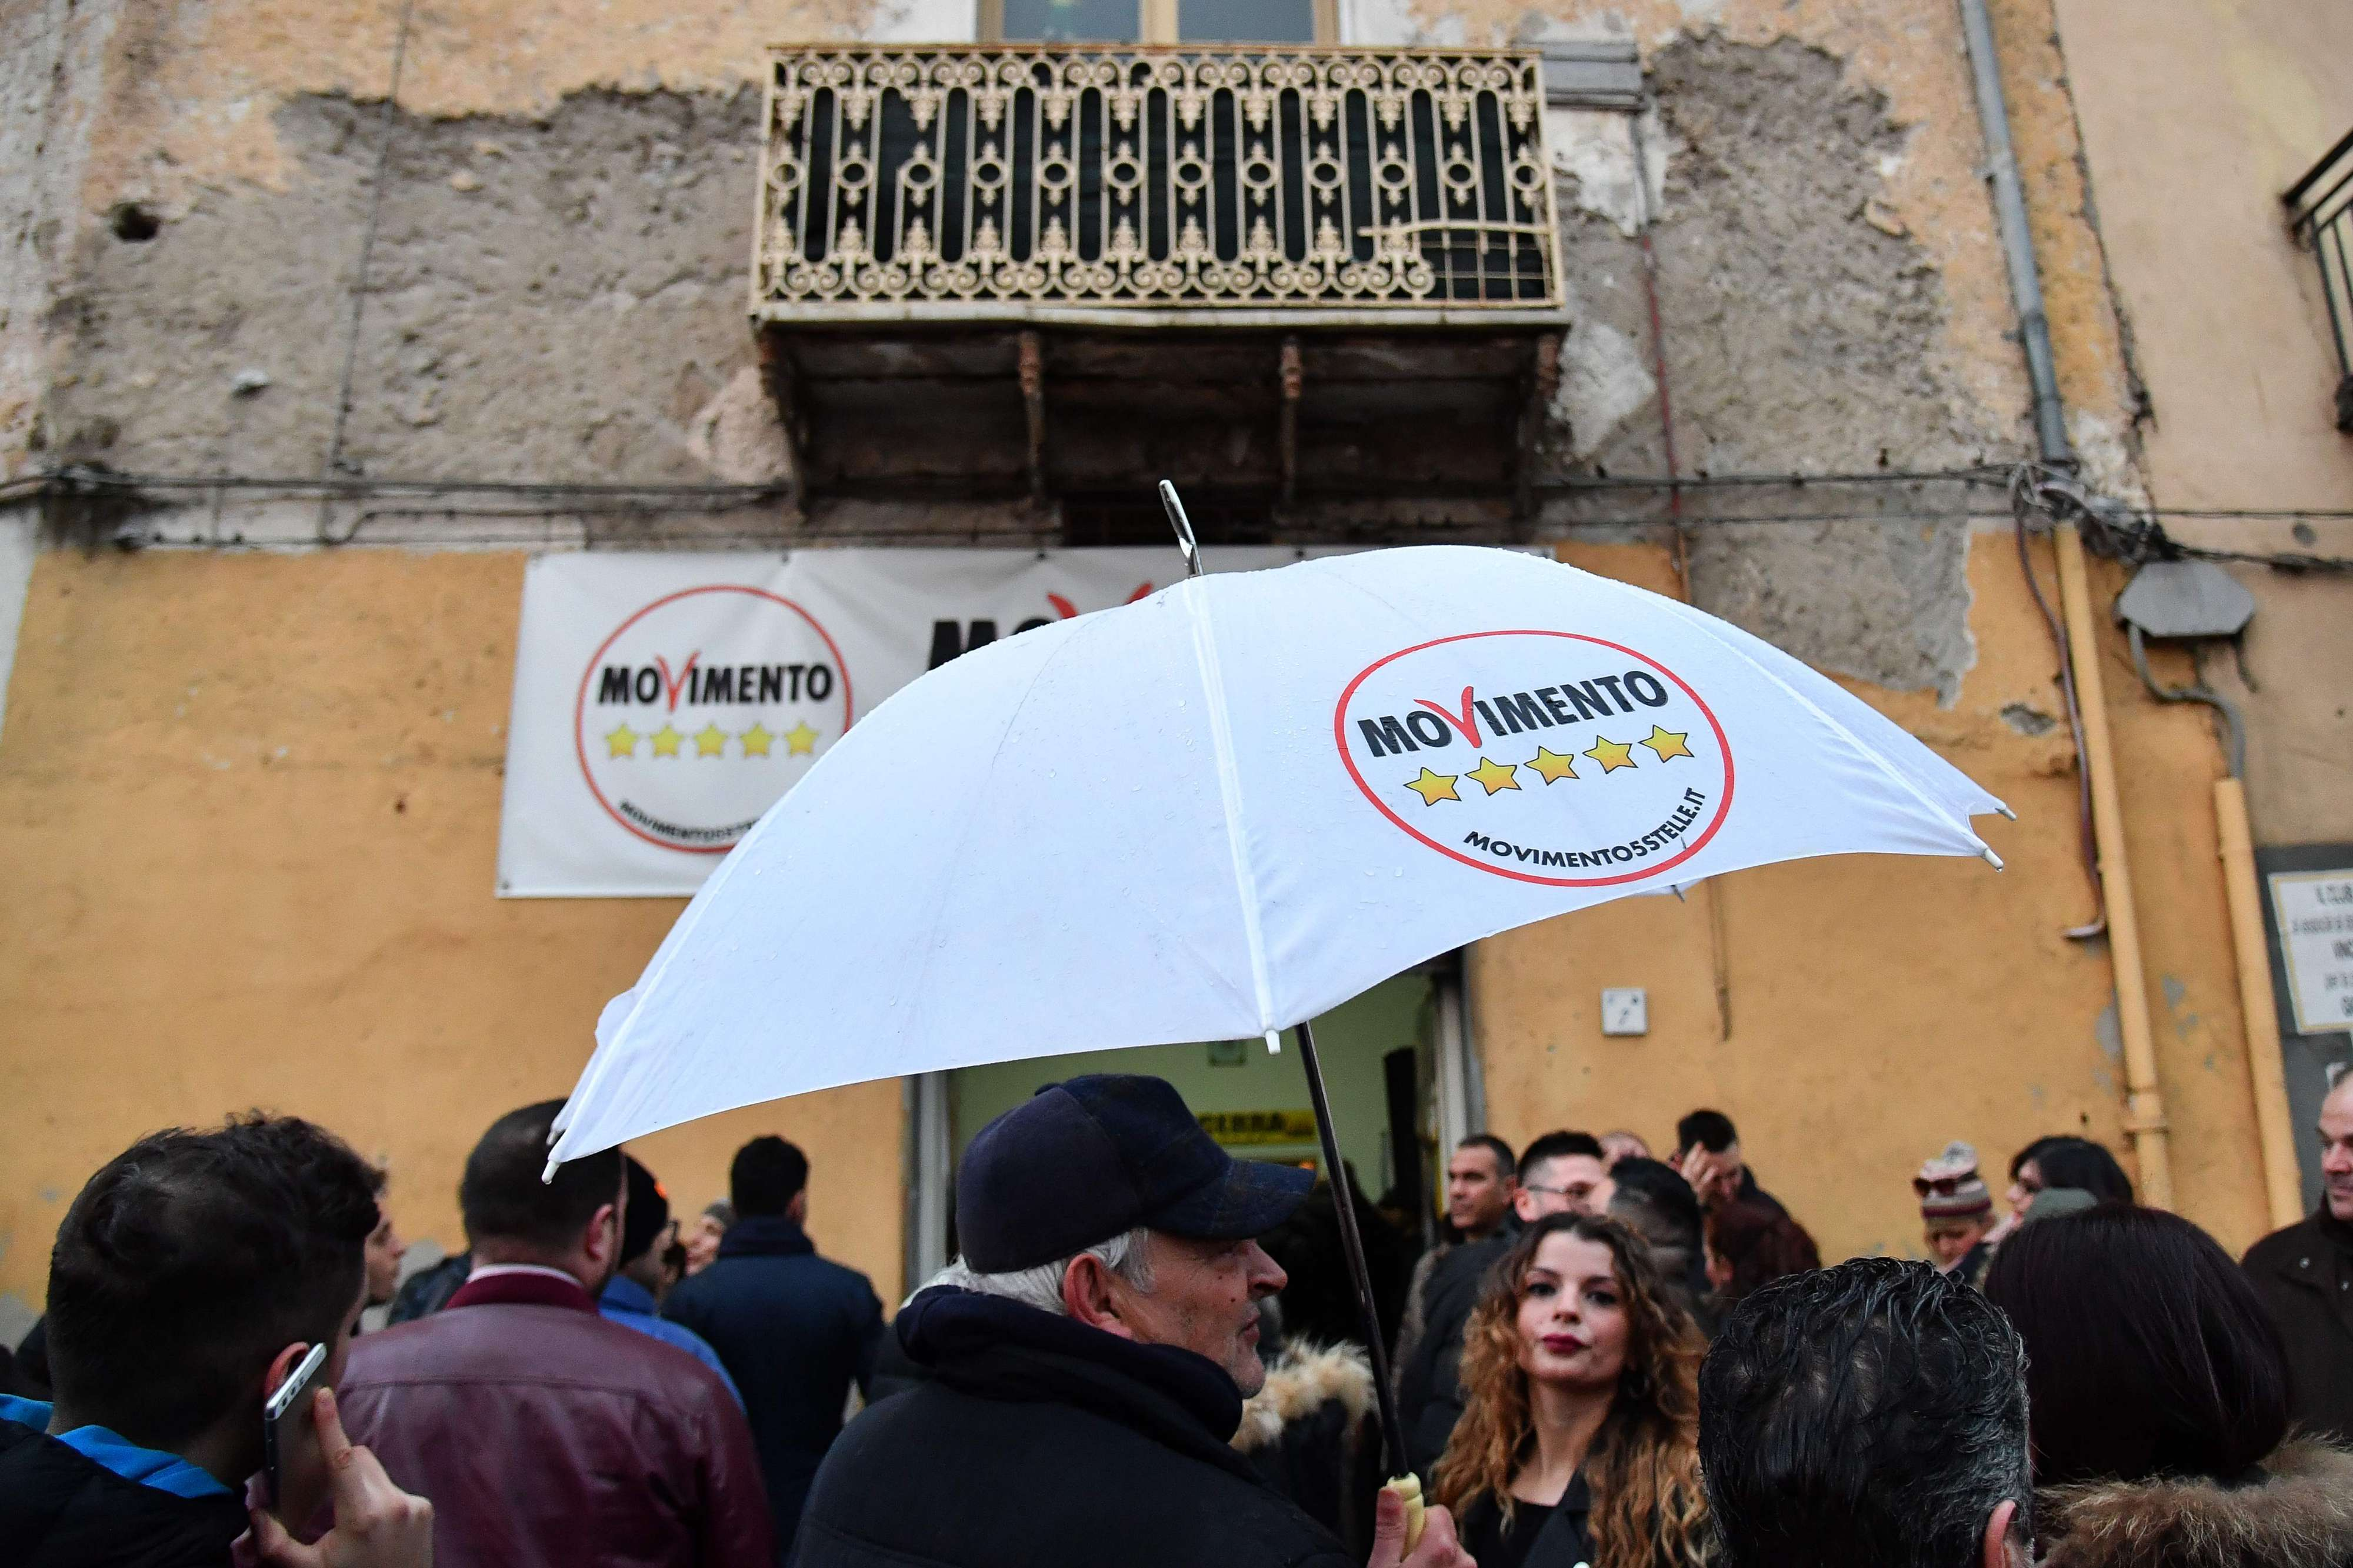 Supporters of populist Five Star Movement (M5S) party wait for their leader Luigi Di Maio to arrive at a meeting in Acerra, on March 6.  (AFP)